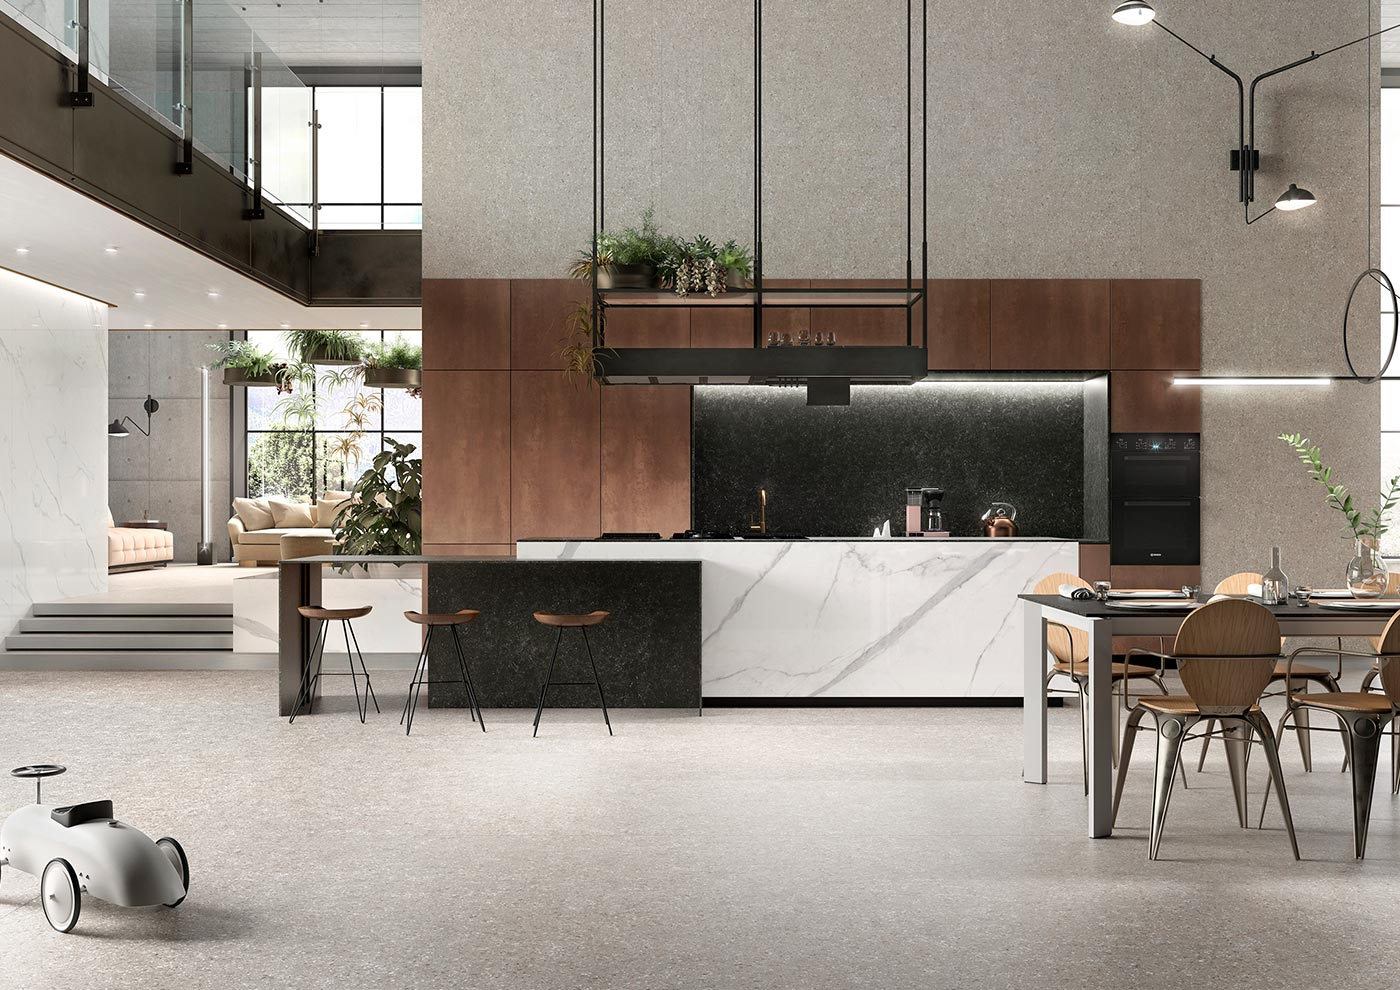 Kitchen design and decoration - Functionality and comfort